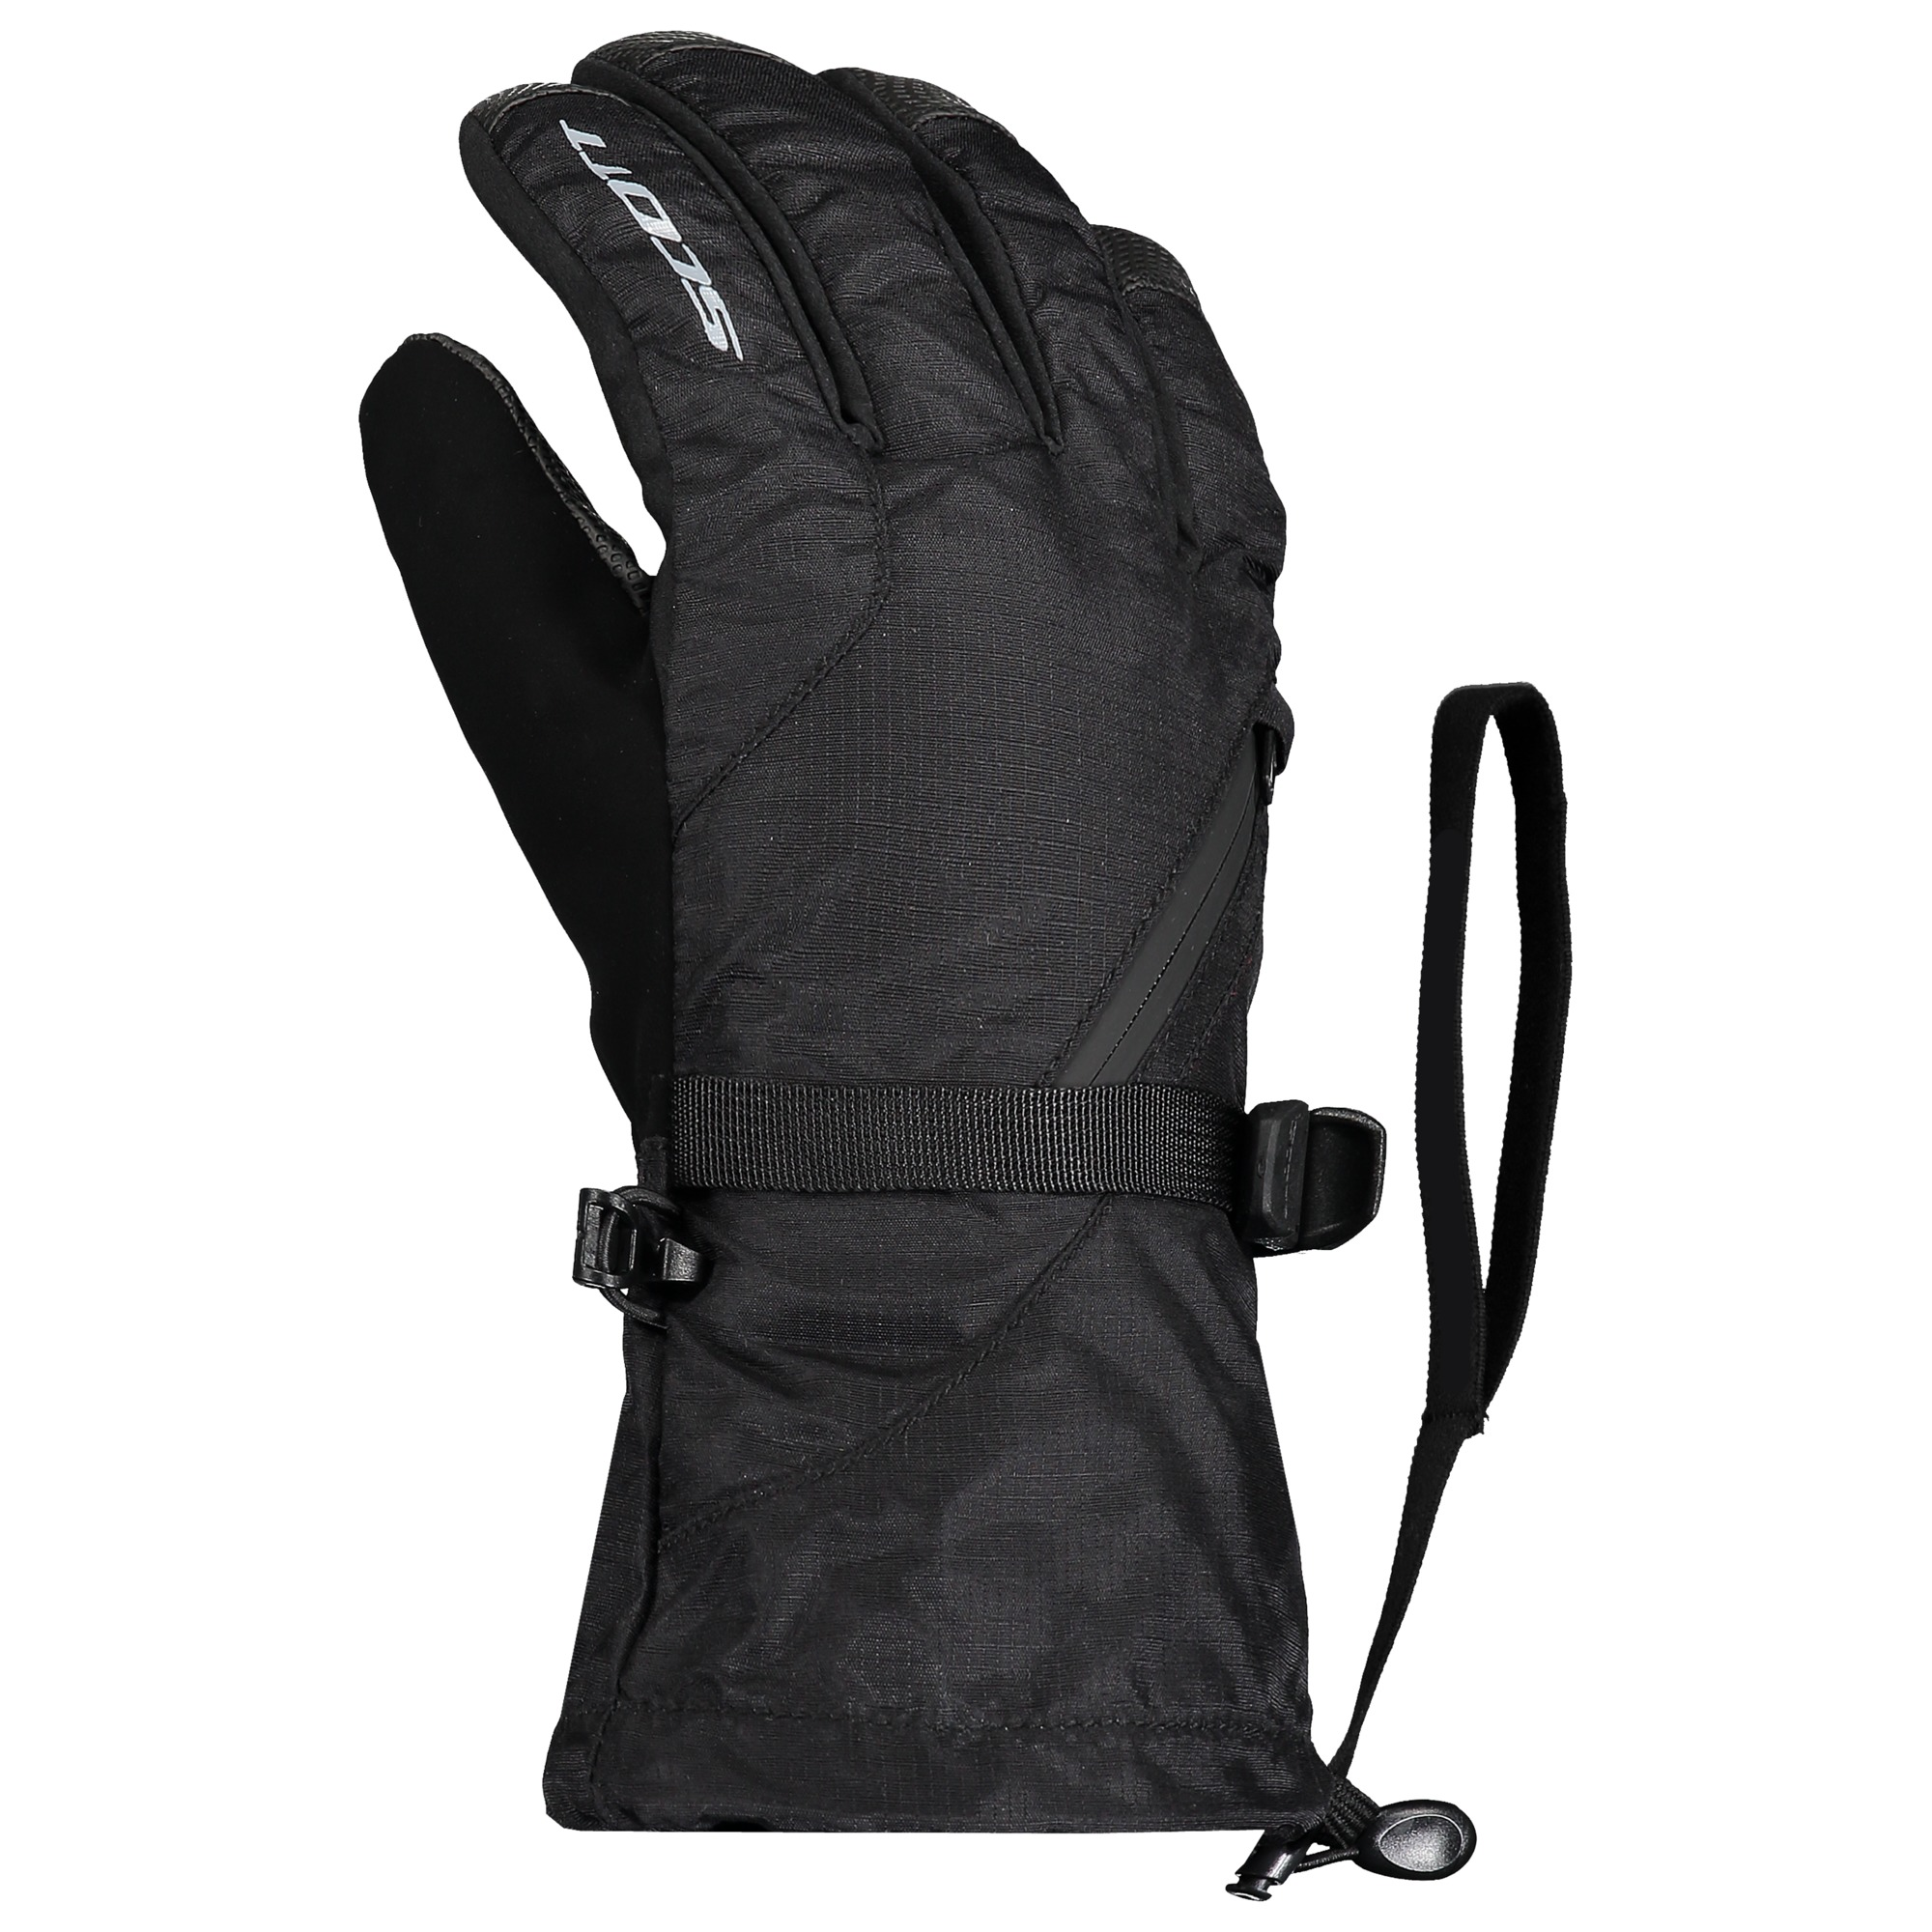 Mittens clipart ski glove. Scott ultimate junior